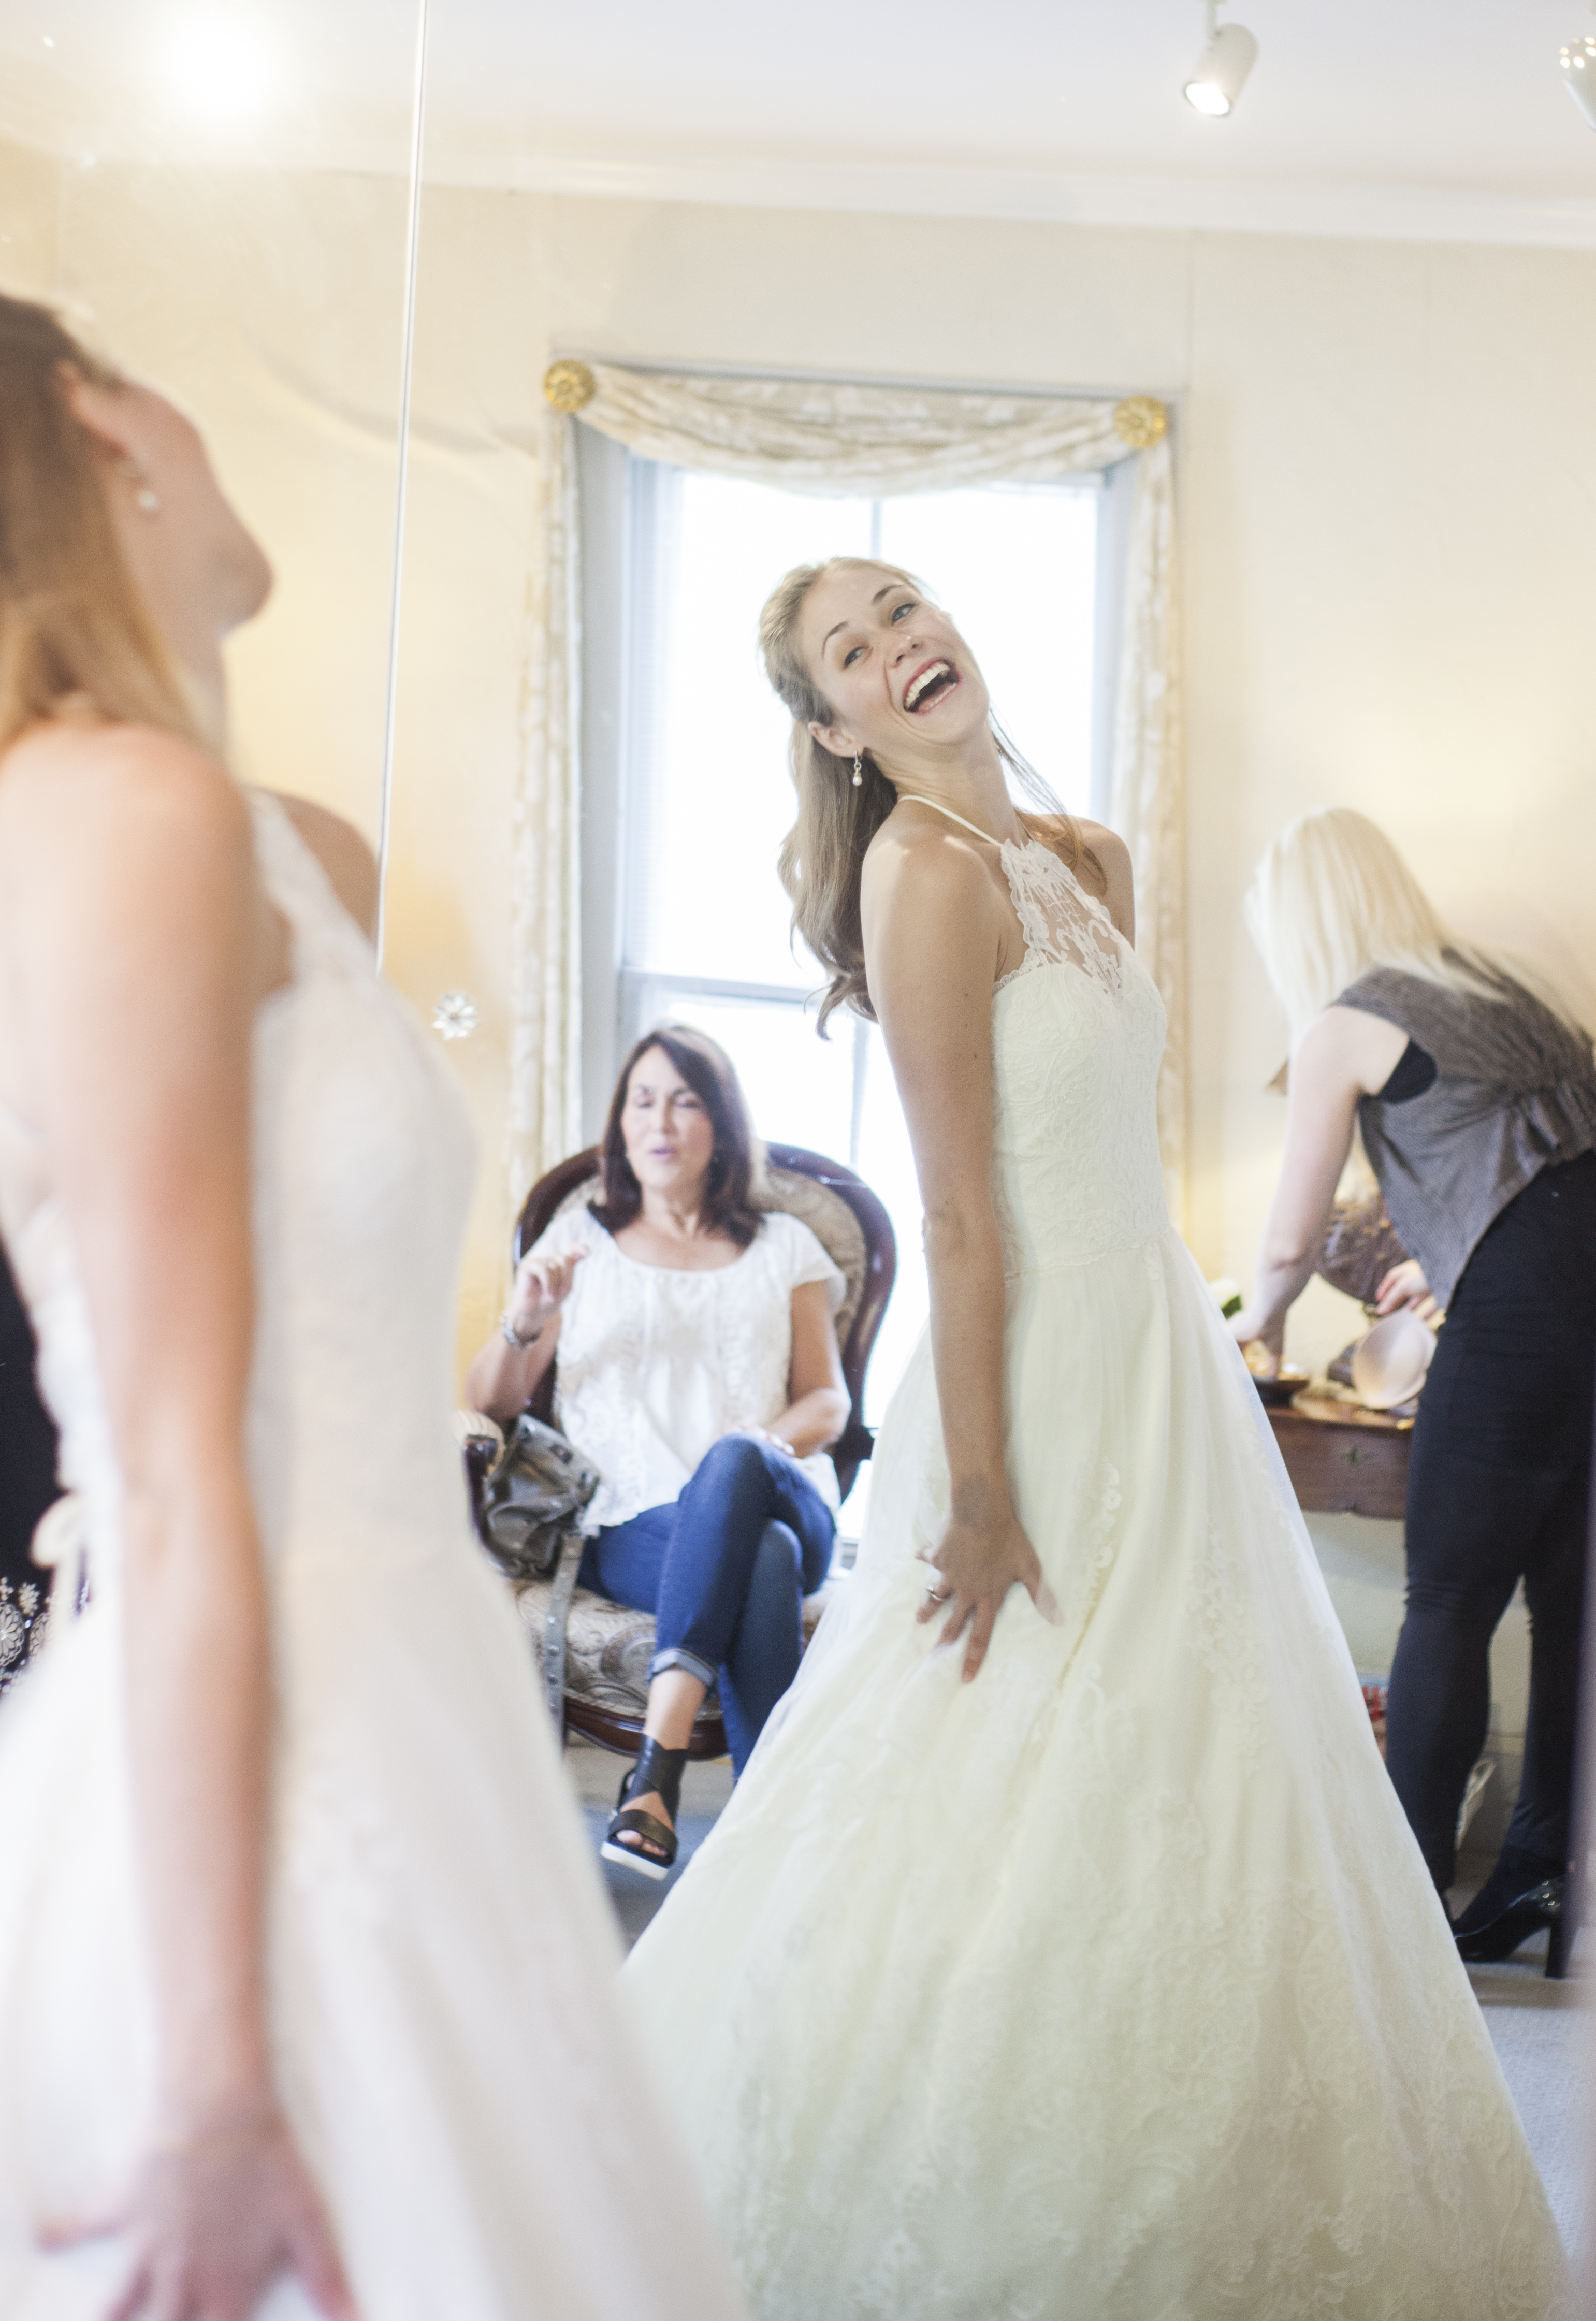 Bridal gown experience